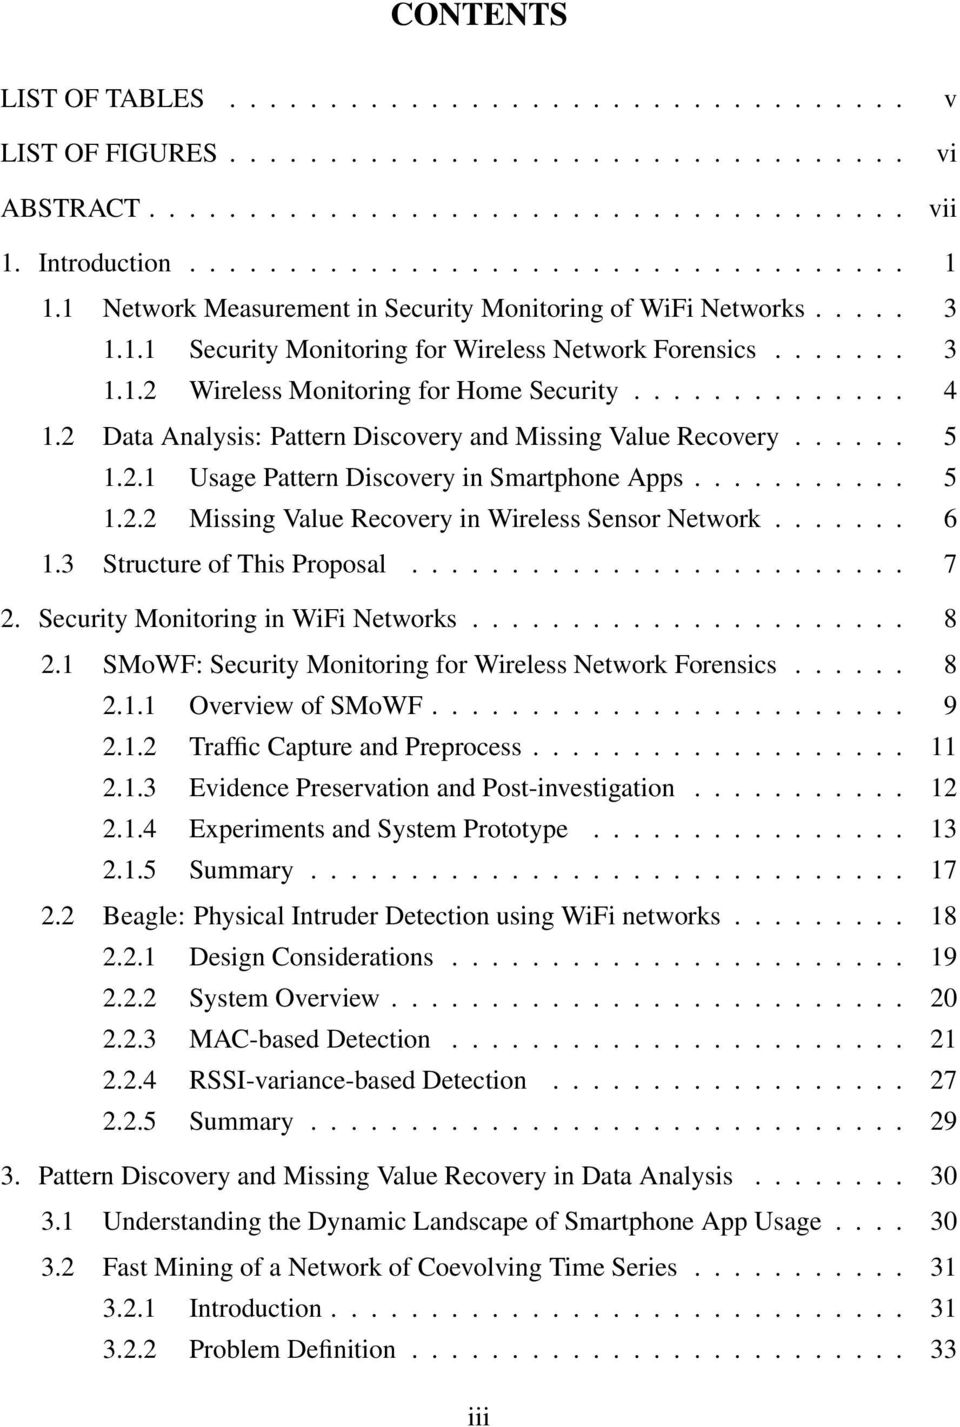 2 Data Analysis: Pattern Discovery and Missing Value Recovery...... 5 1.2.1 Usage Pattern Discovery in Smartphone Apps........... 5 1.2.2 Missing Value Recovery in Wireless Sensor Network....... 6 1.